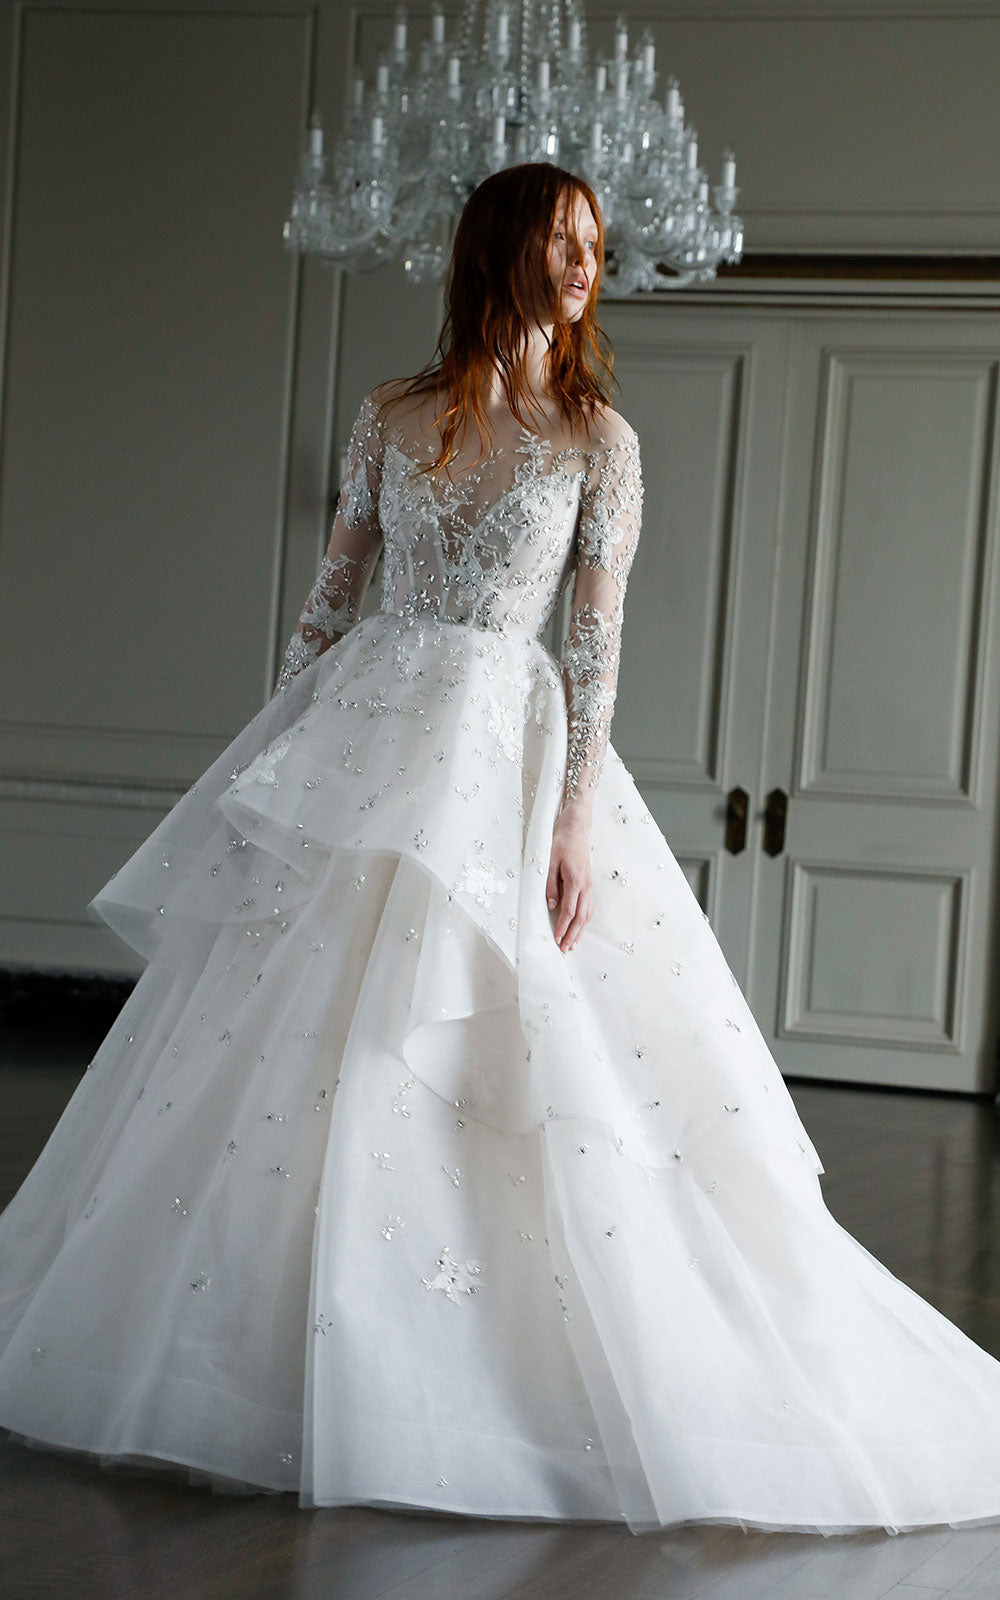 K'Mich Wedding - wedding planning - wedding dresses- monique llhuier